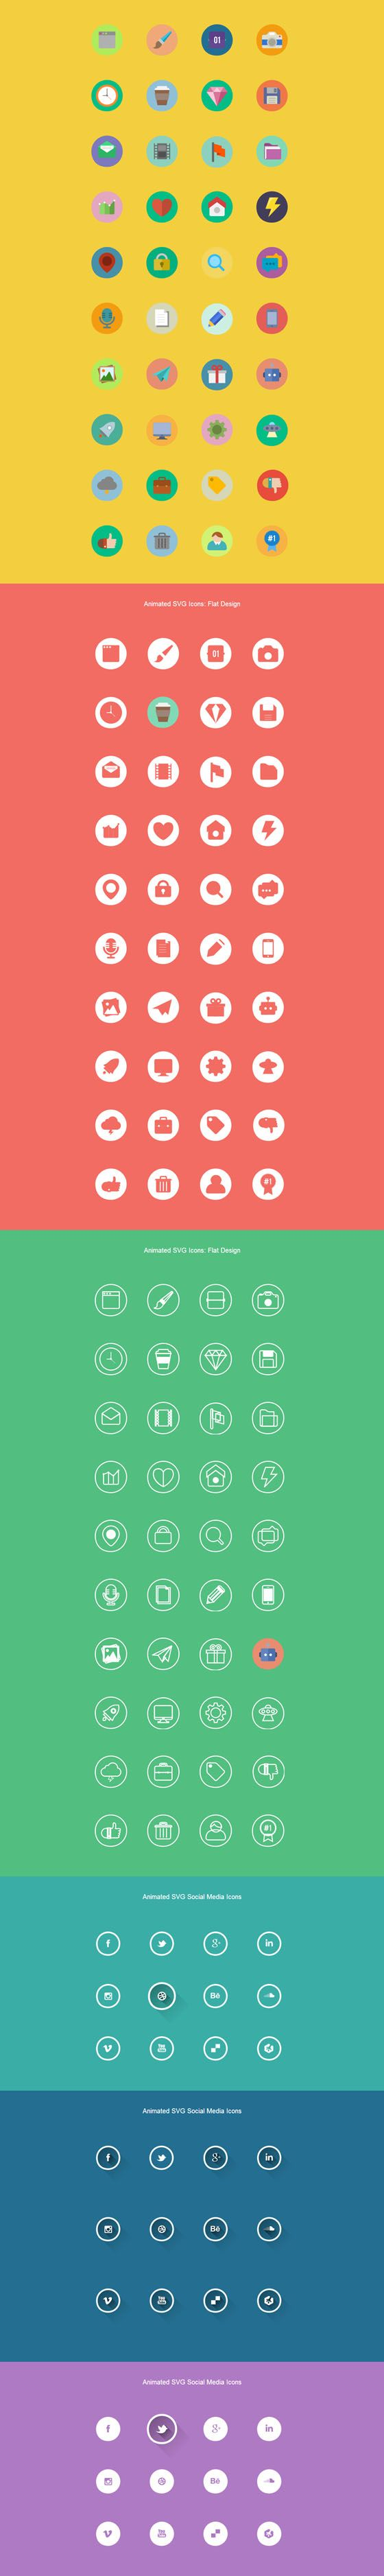 Free Download 150+ Free Animated Flat SVG Icons